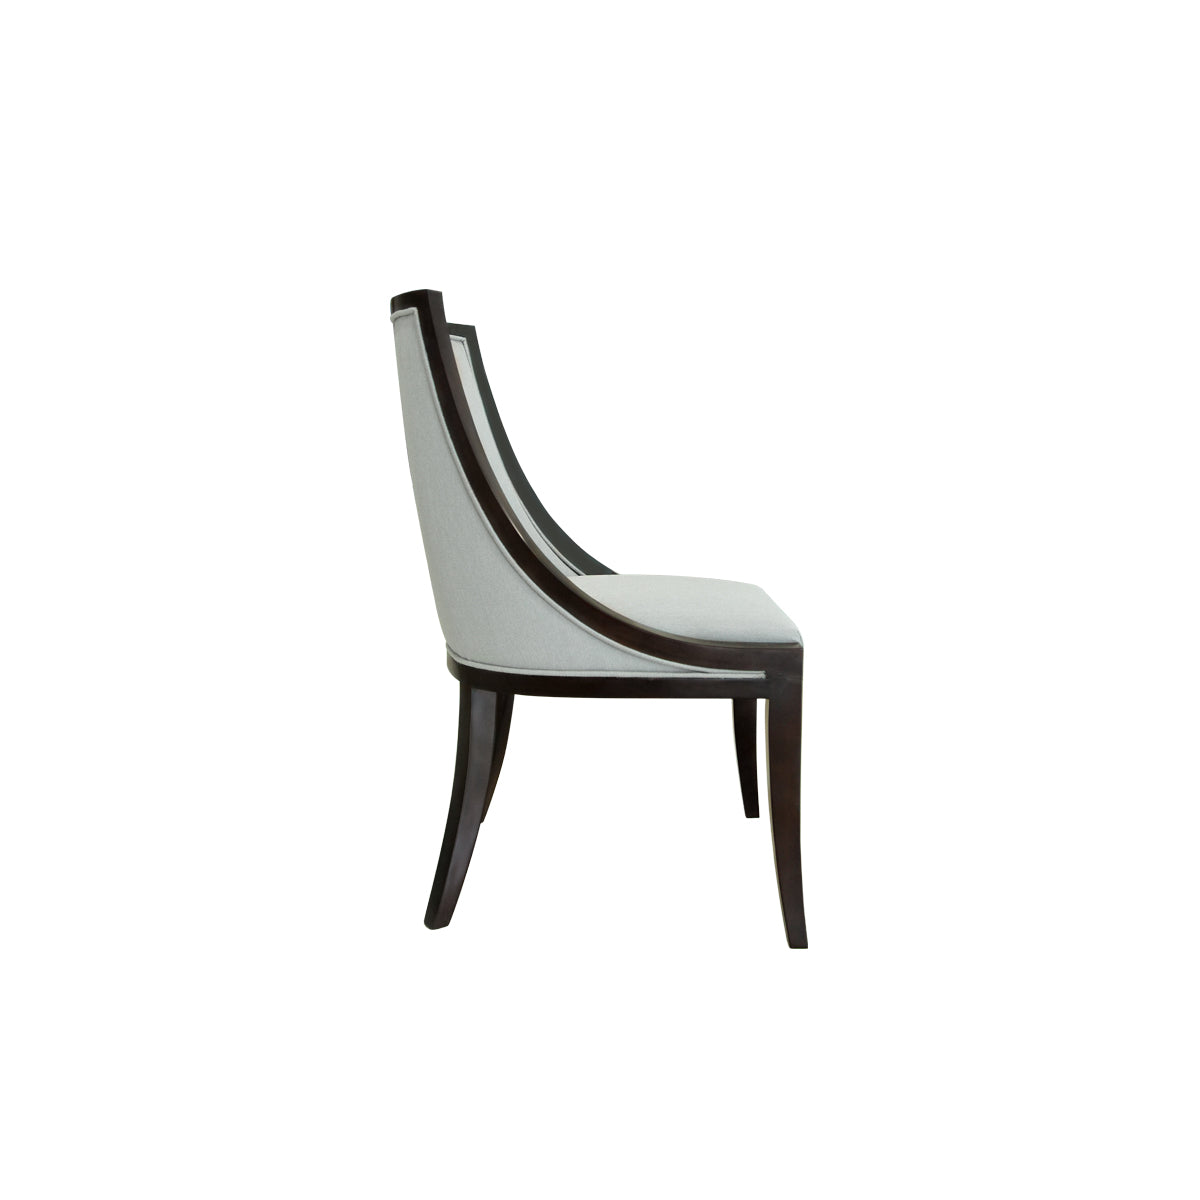 indonesian furniture - dining room chair with wood trim and straight legs